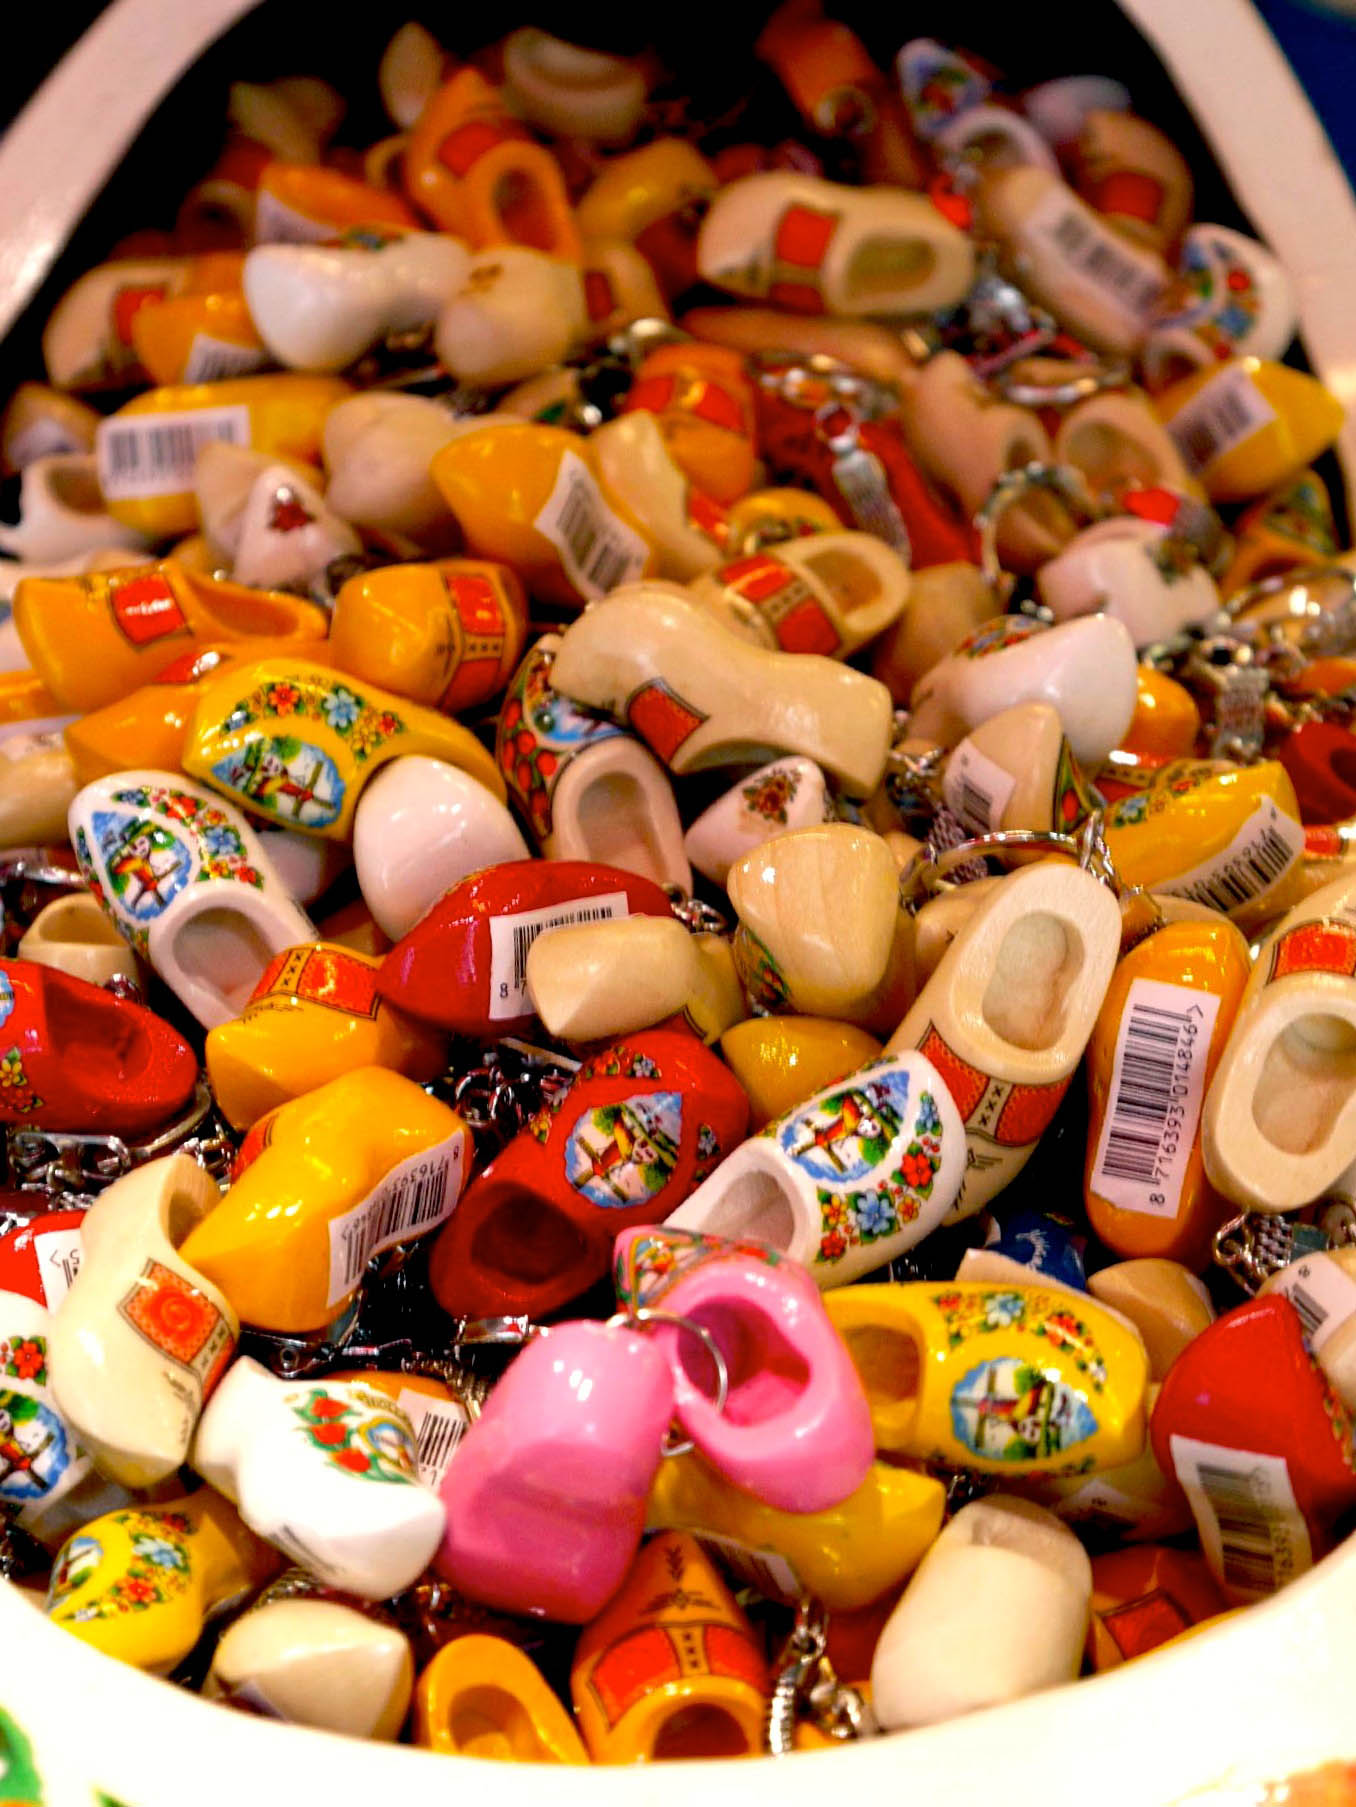 funny clogs traditional holand 9 Funny Clogs the Traditional Holand Footwear